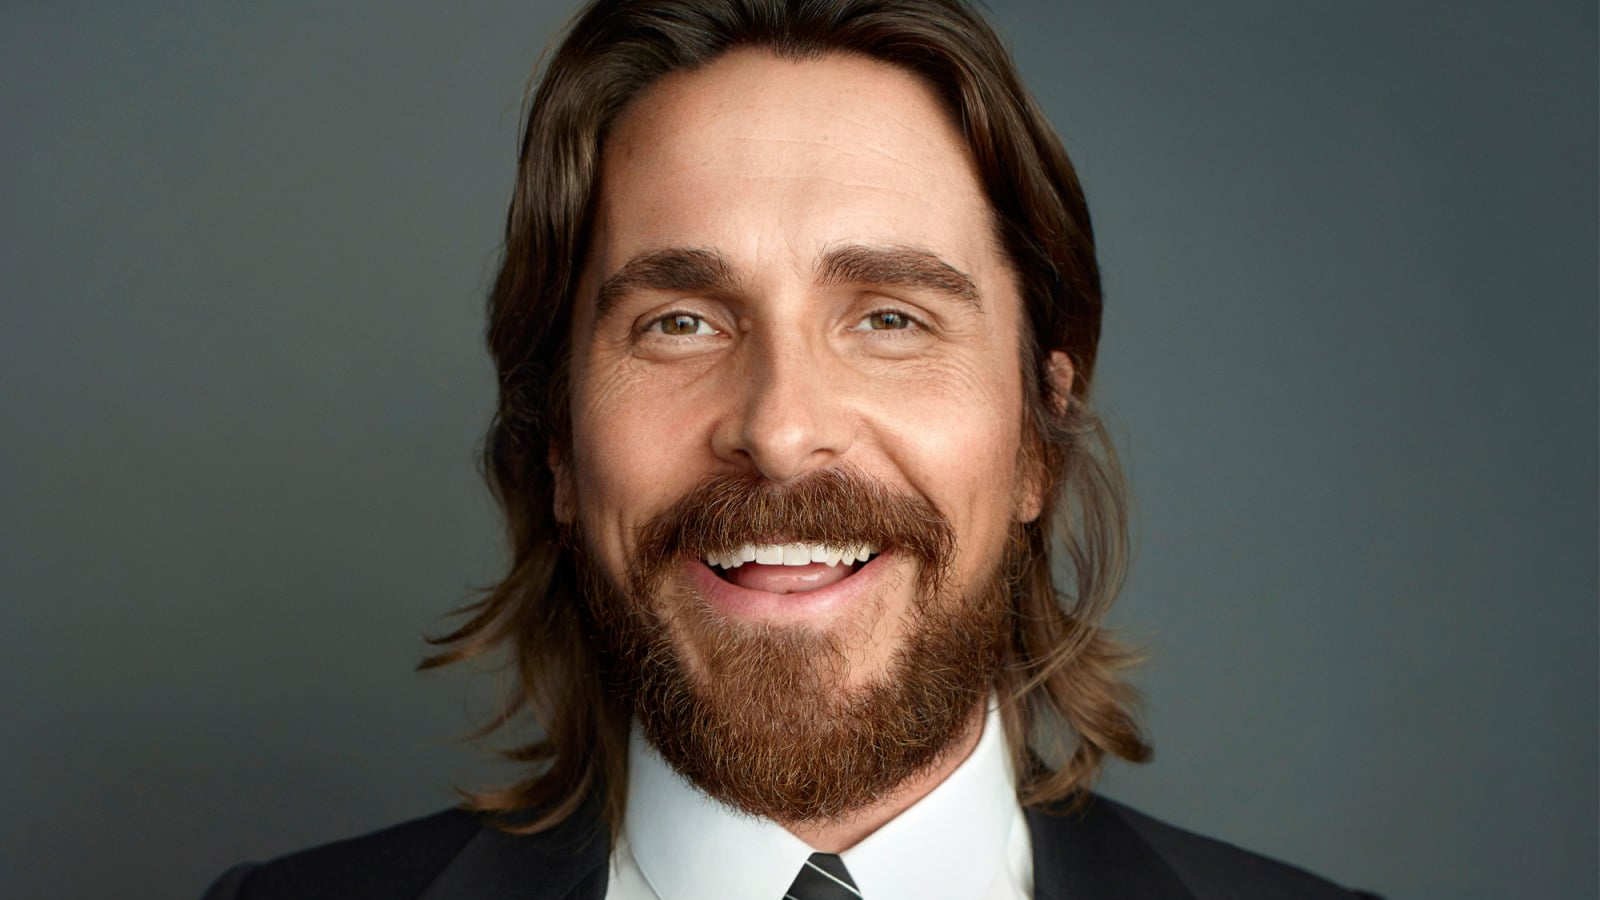 Christian Bale British Movie Actor, Producter, Voice Actor